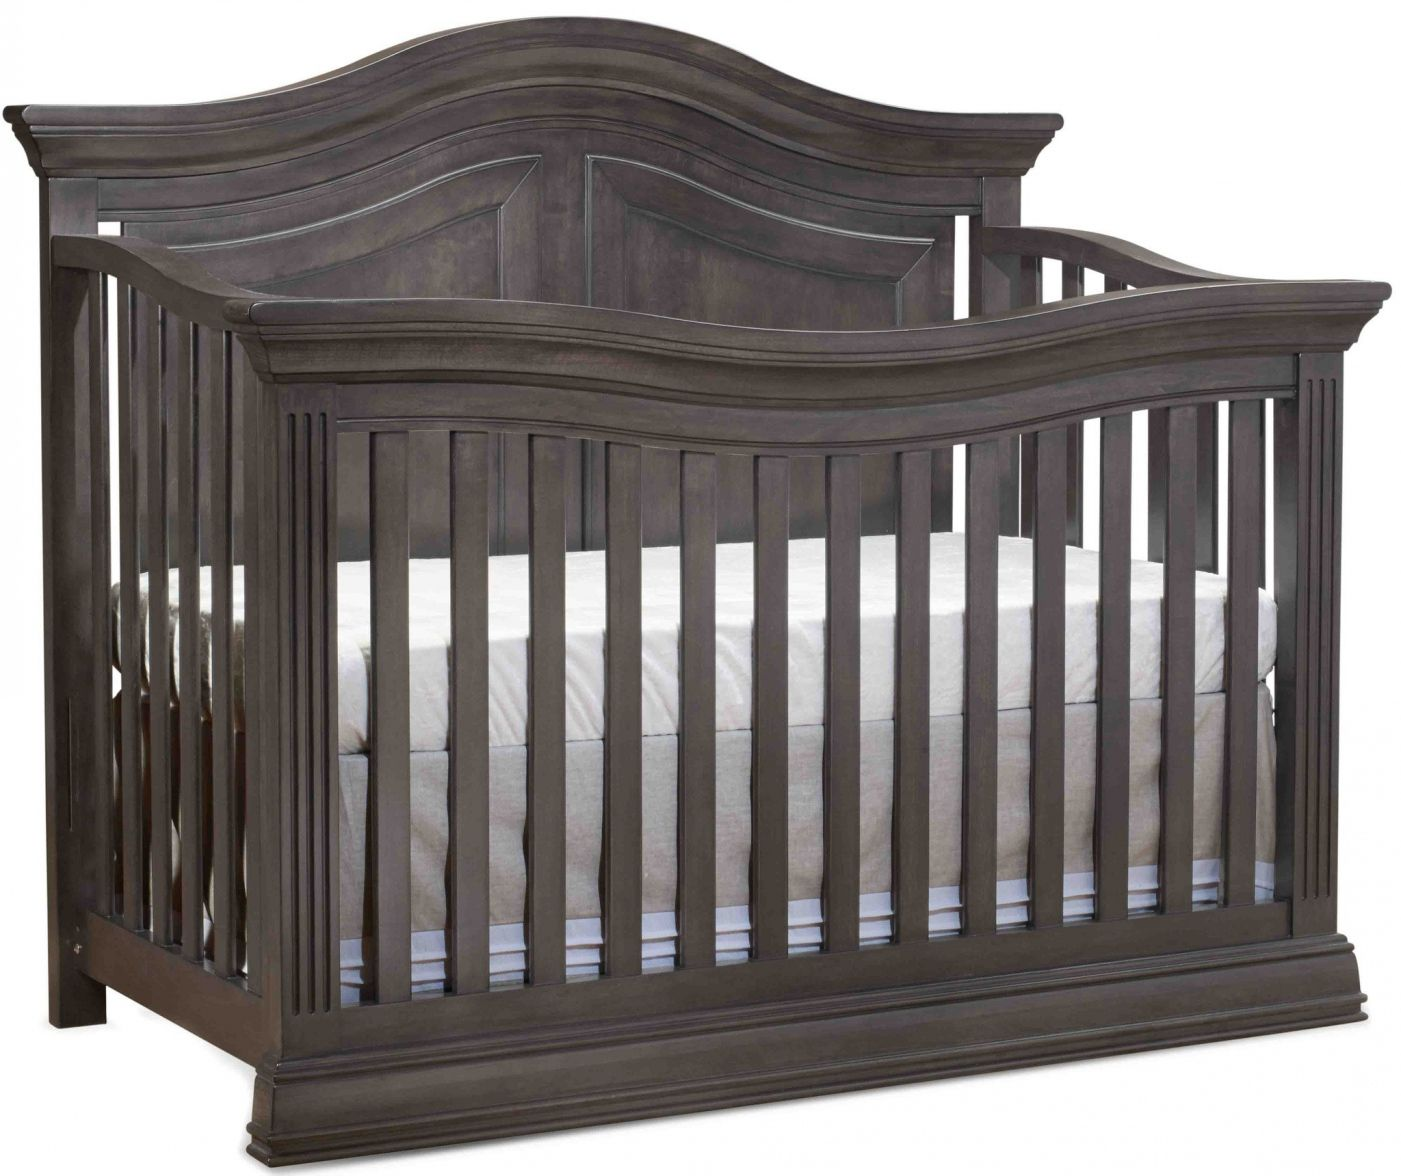 Incroyable 30 Sorelle Baby Furniture Reviews   Interior Bedroom Design Furniture Check  More At Http:/